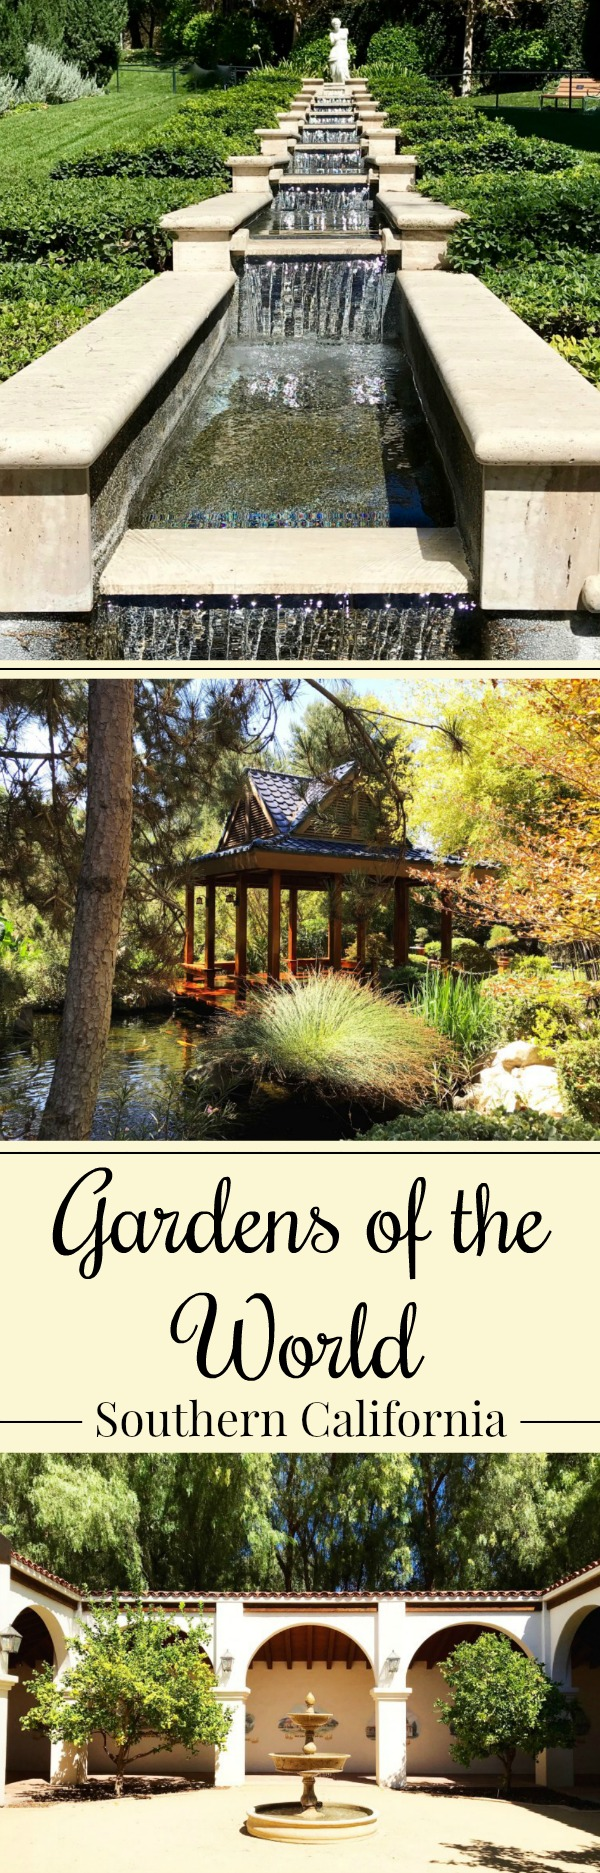 Gardens Of The World - Thousand Oaks California #ad #VisitConejoValley #ThousandOaks #Travel #SouthernCalifornia - Simple Sojourn